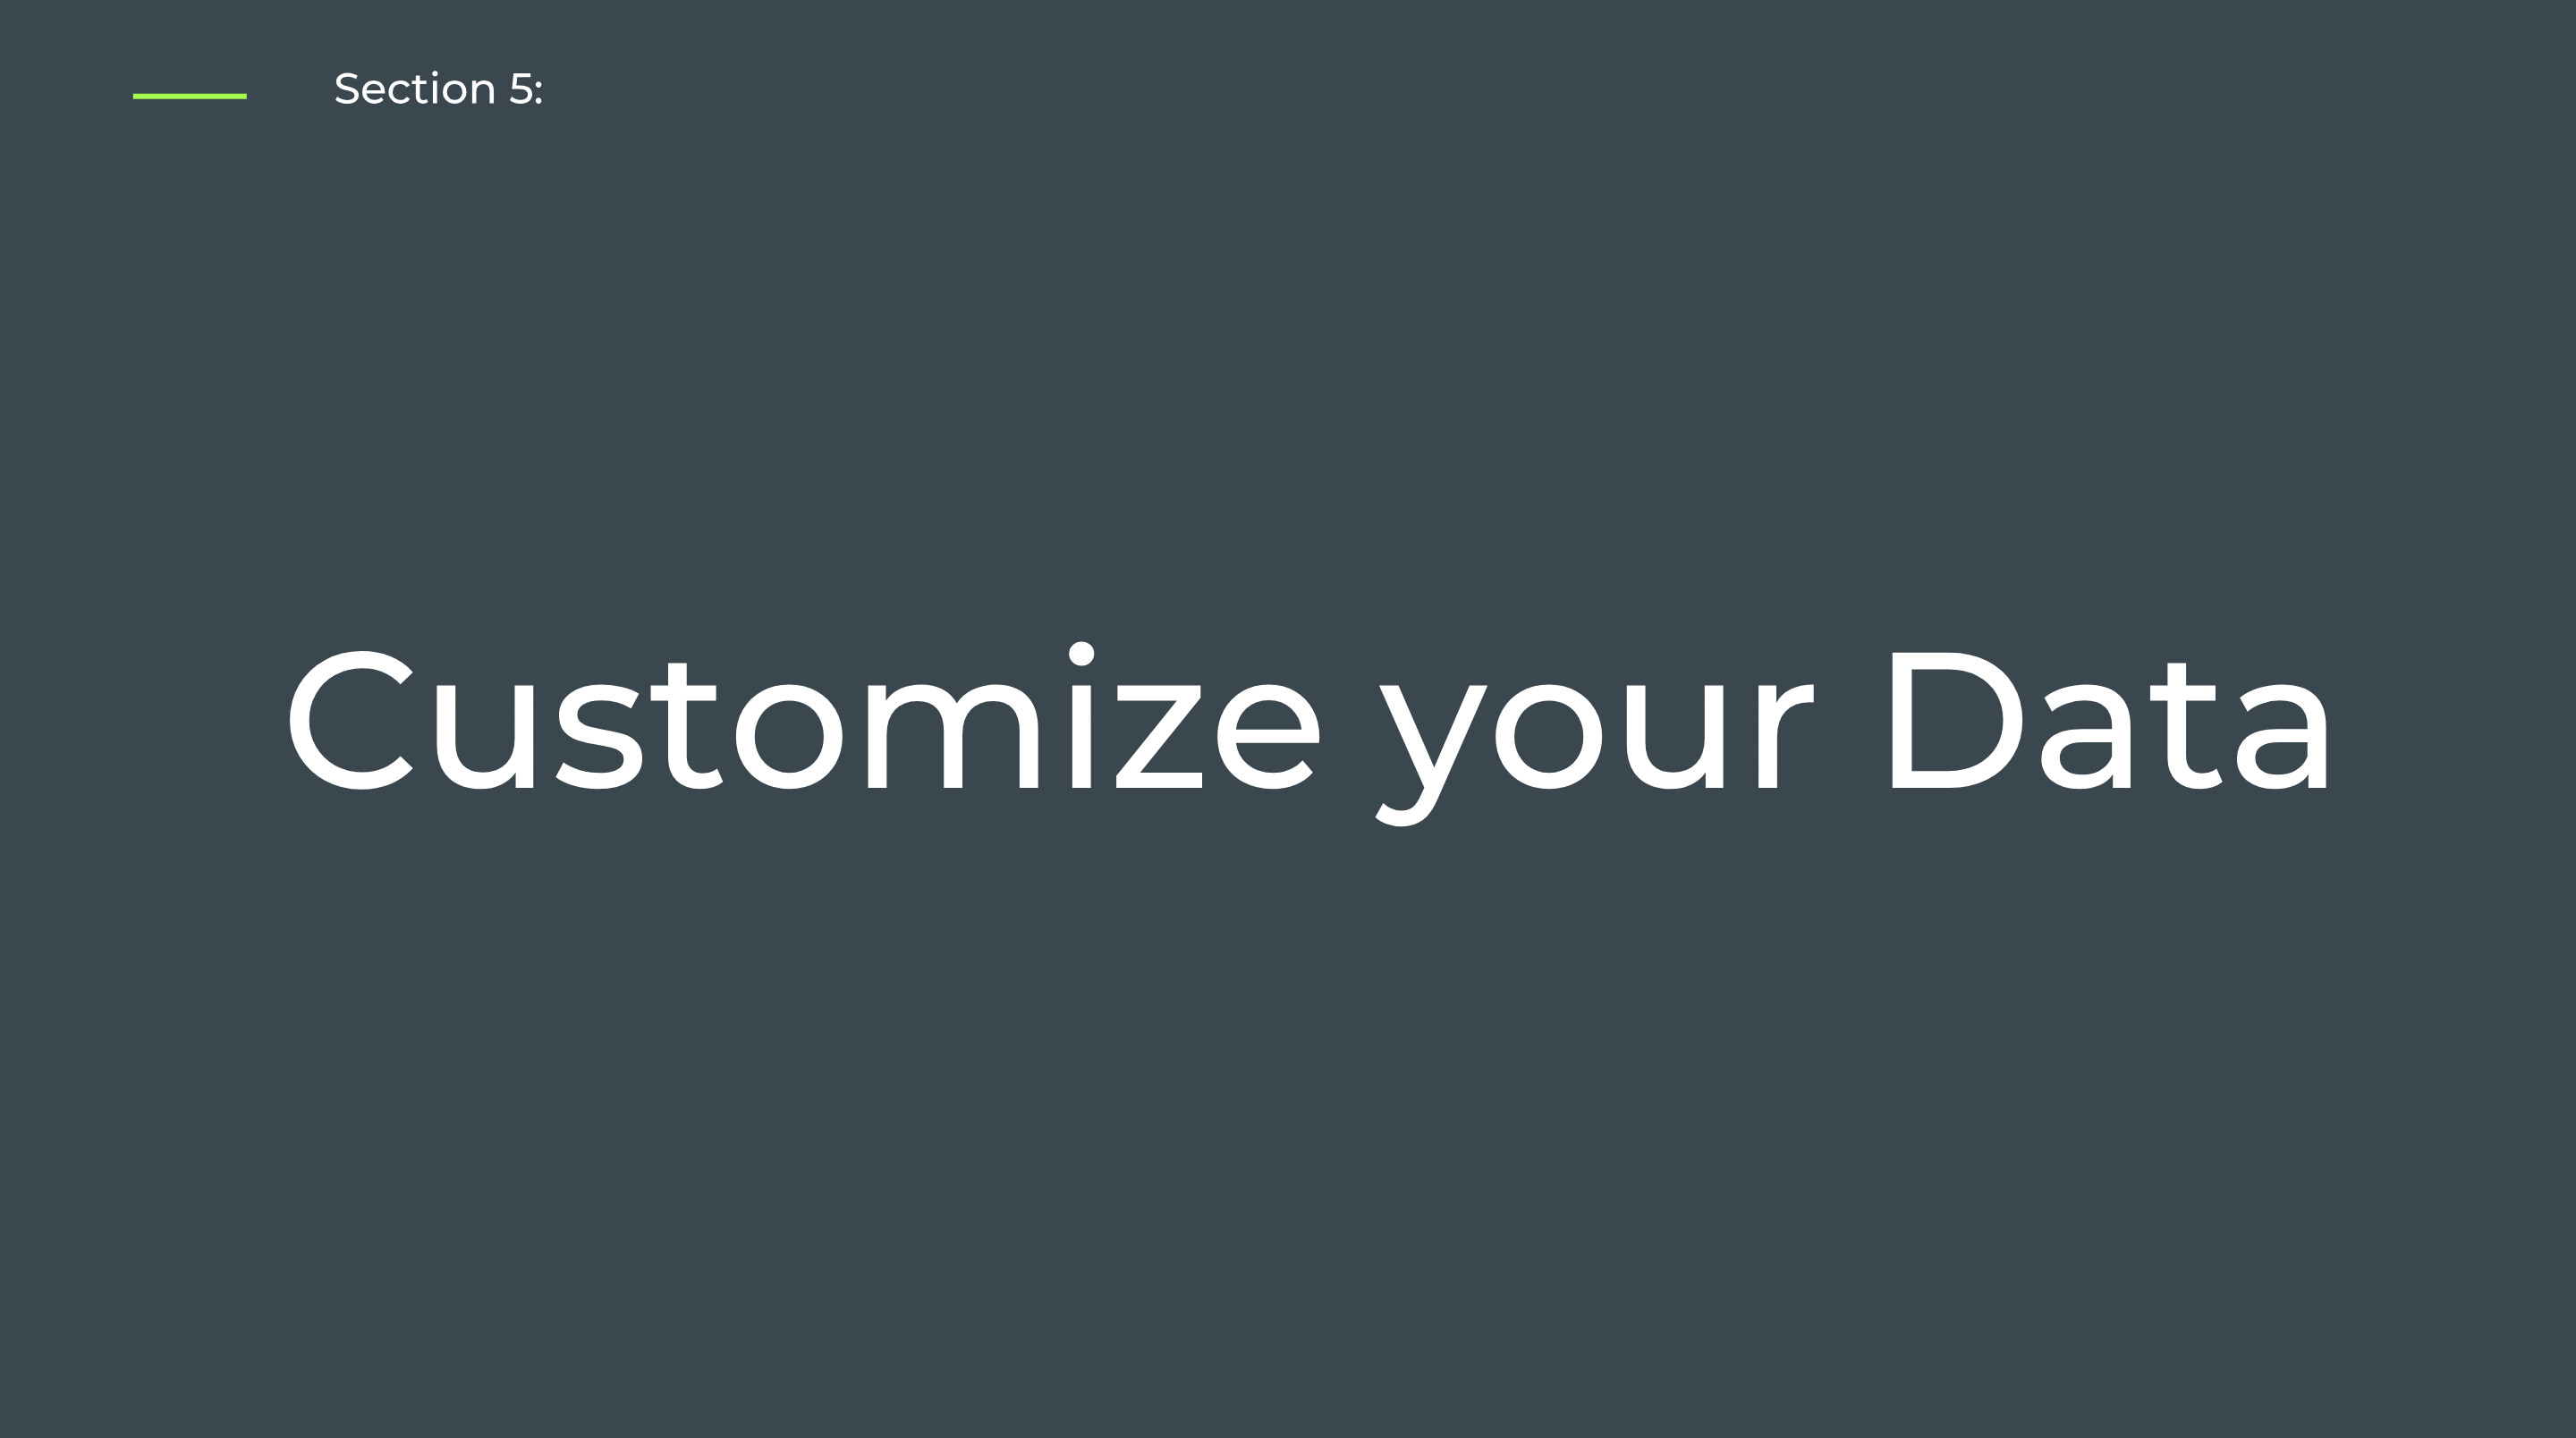 Section 5: Customize your Data - Self-Paced Onboarding for Admins